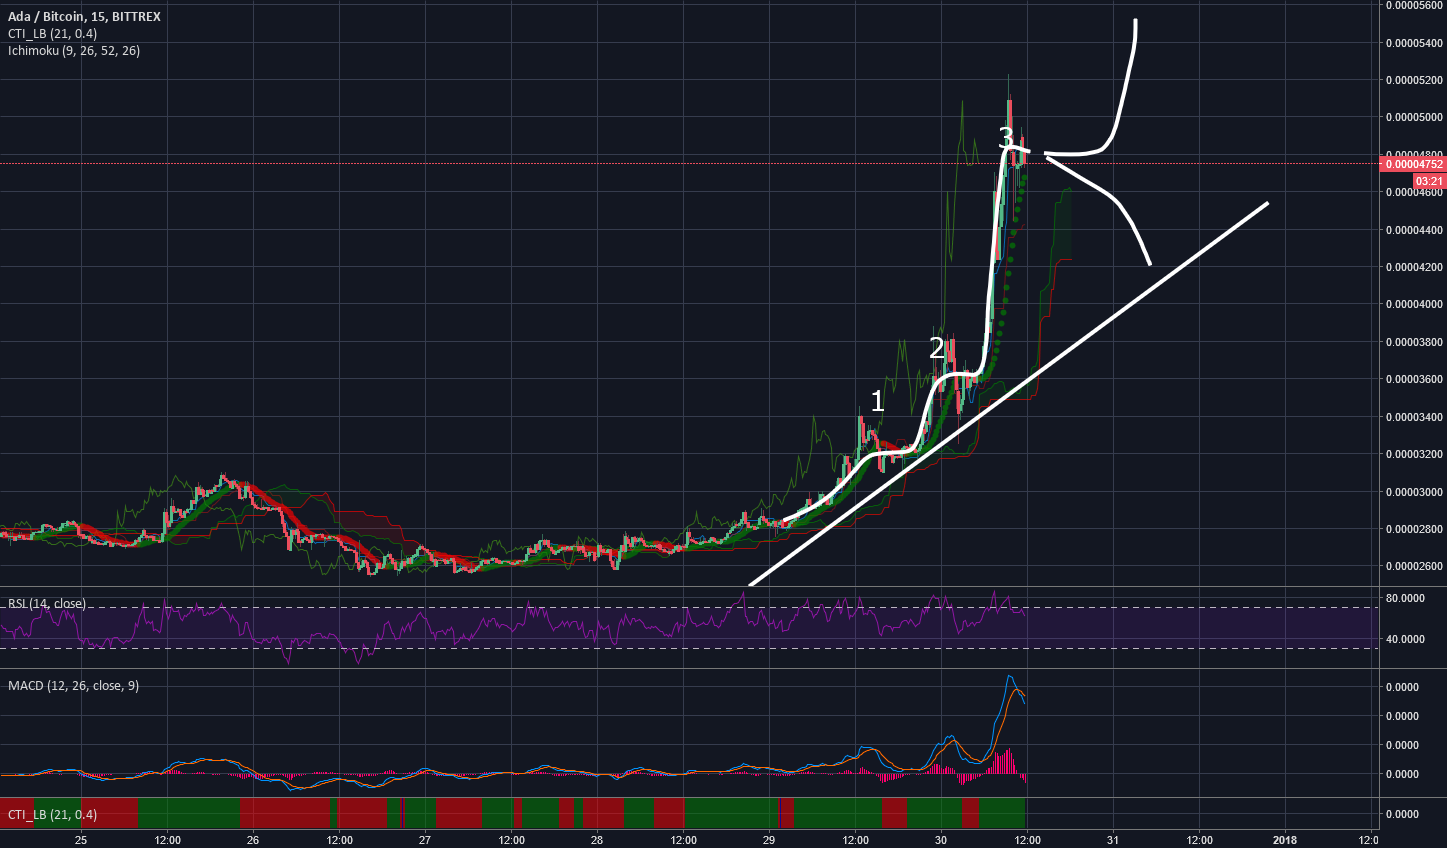 ADA - Possible Parabolic curve - Super fast 100% gain